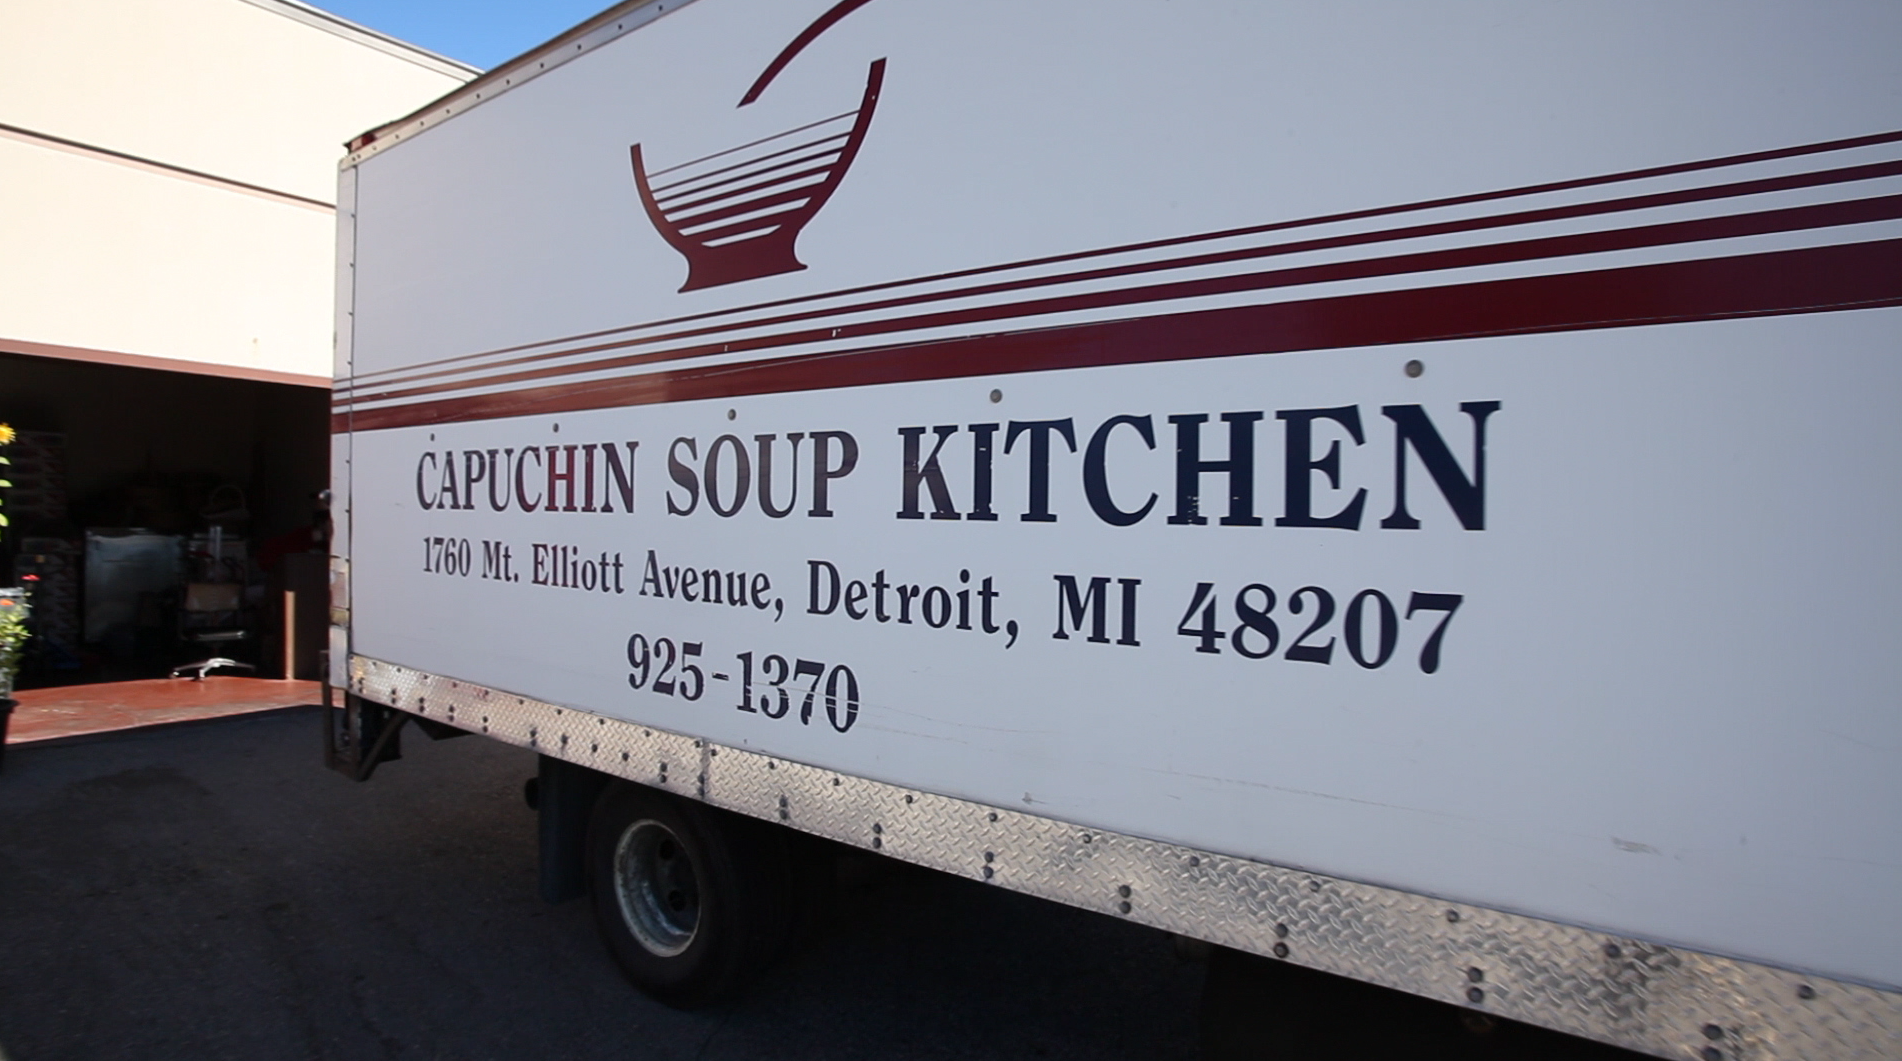 bob evans restaurants teams with detroit's capuchin soup kitchen's